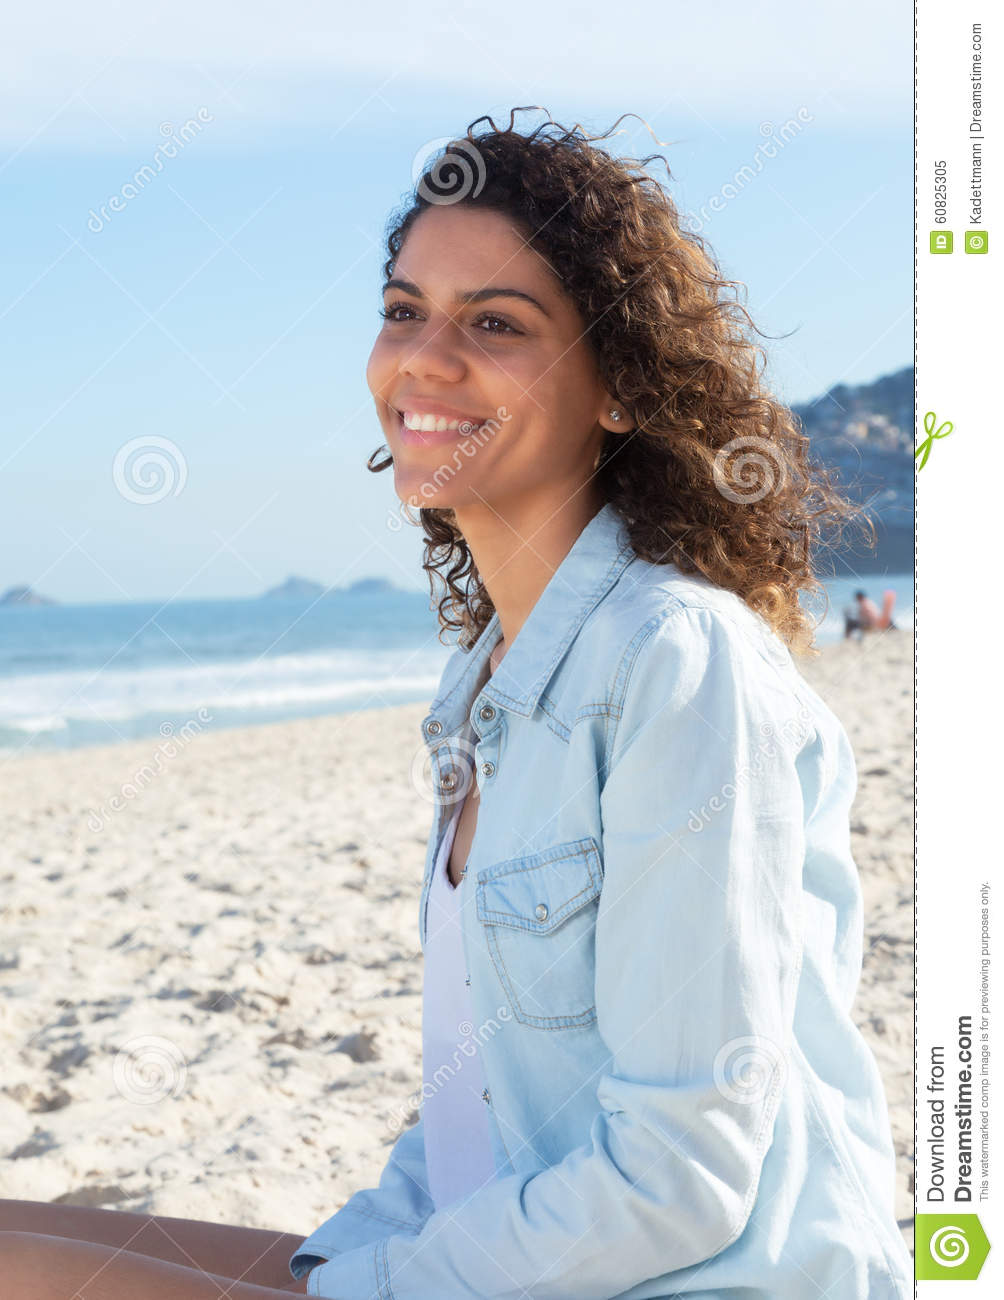 ocean beach latin singles Meet latino singles in ocean isle beach, north carolina online & connect in the chat rooms dhu is a 100% free dating site to meet latino men in ocean isle beach.